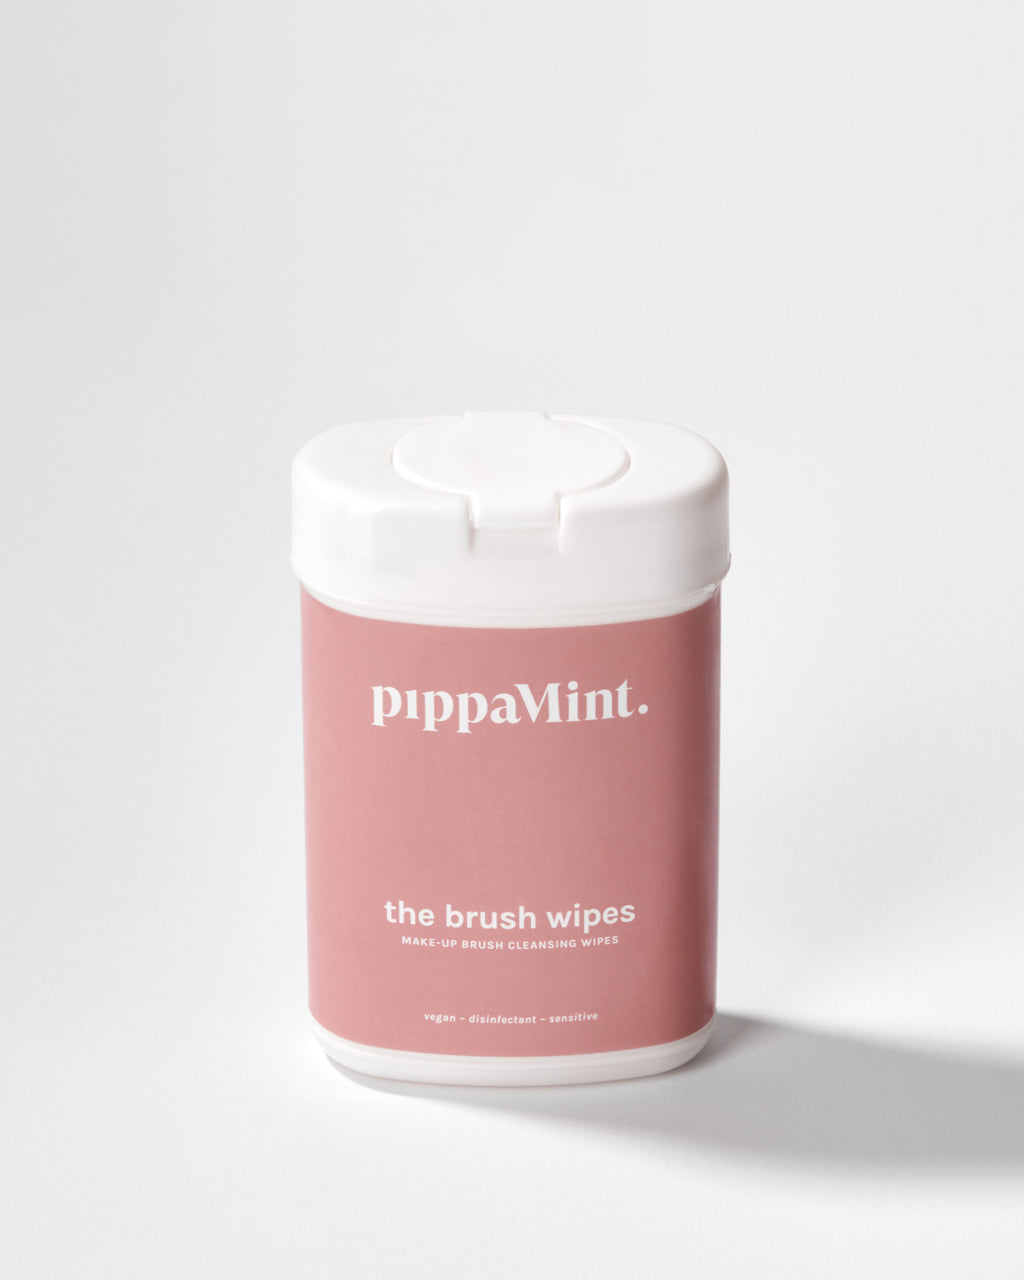 the brush wipes